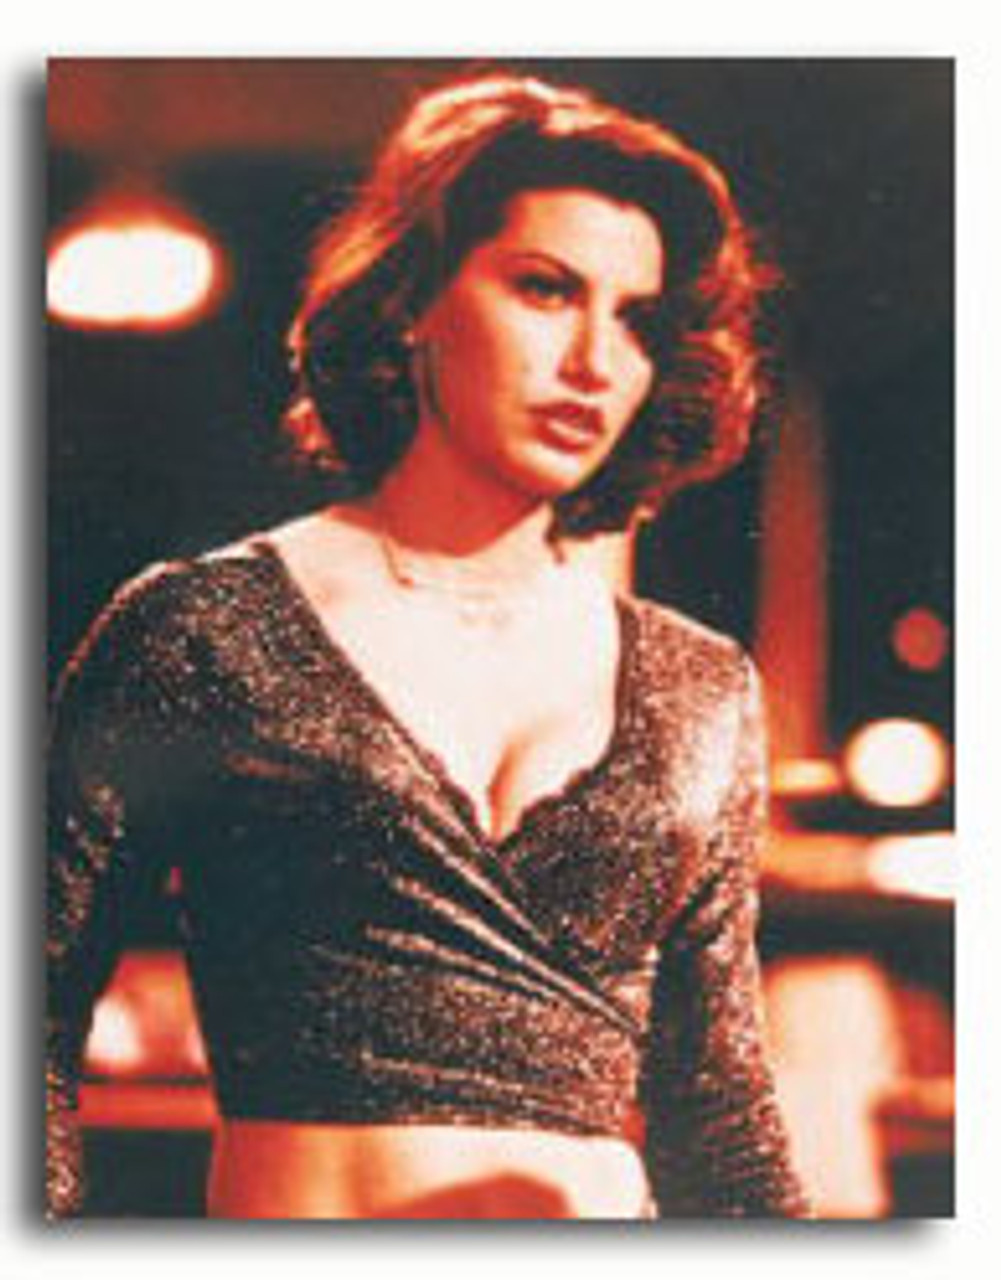 ss2819518 movie picture of gina gershon buy celebrity